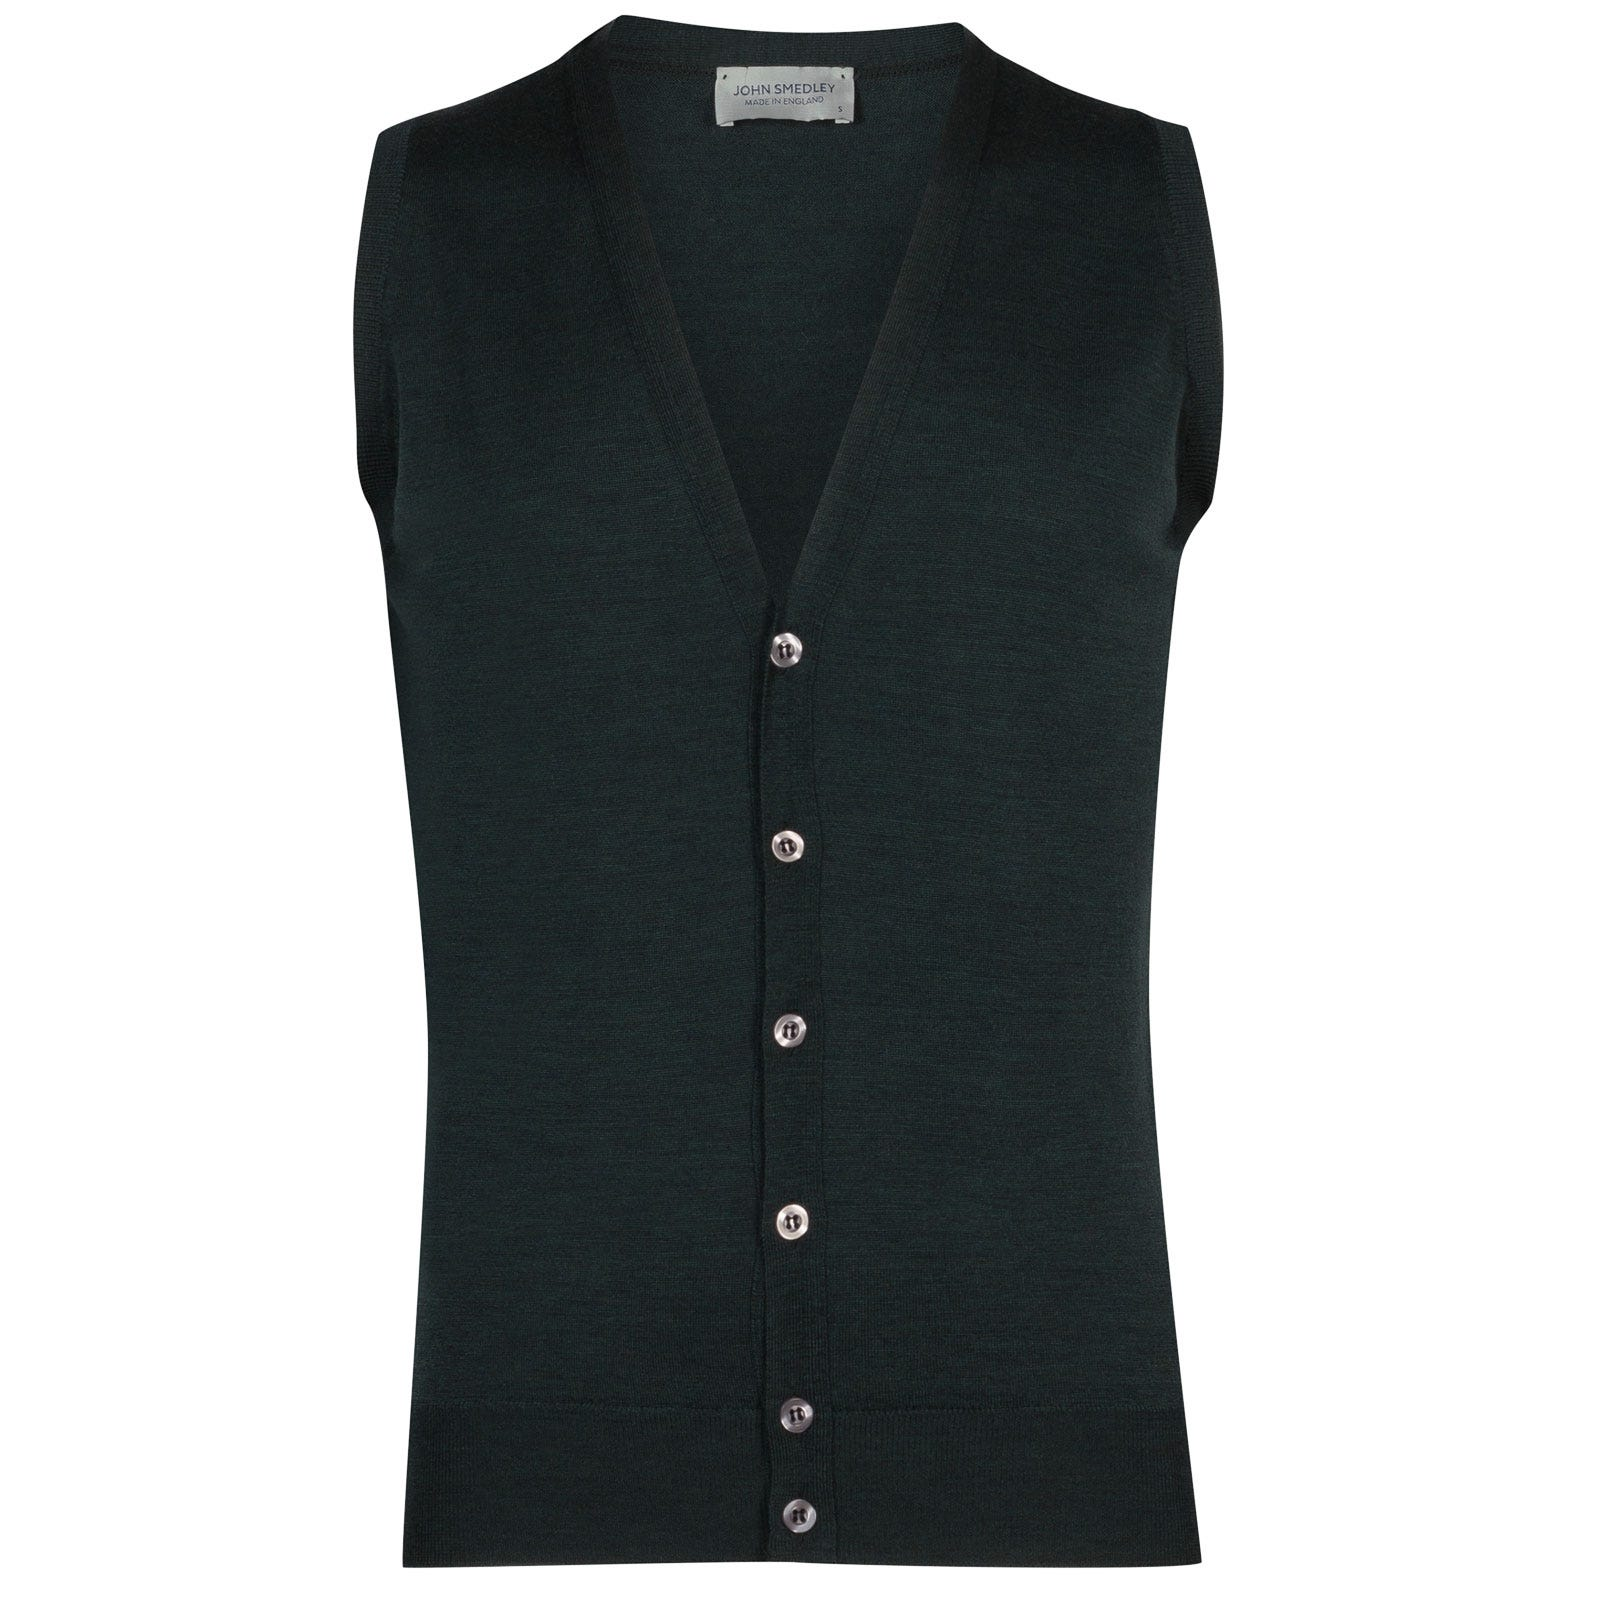 John Smedley huntswood Merino Wool Waistcoat in Racing Green-XL